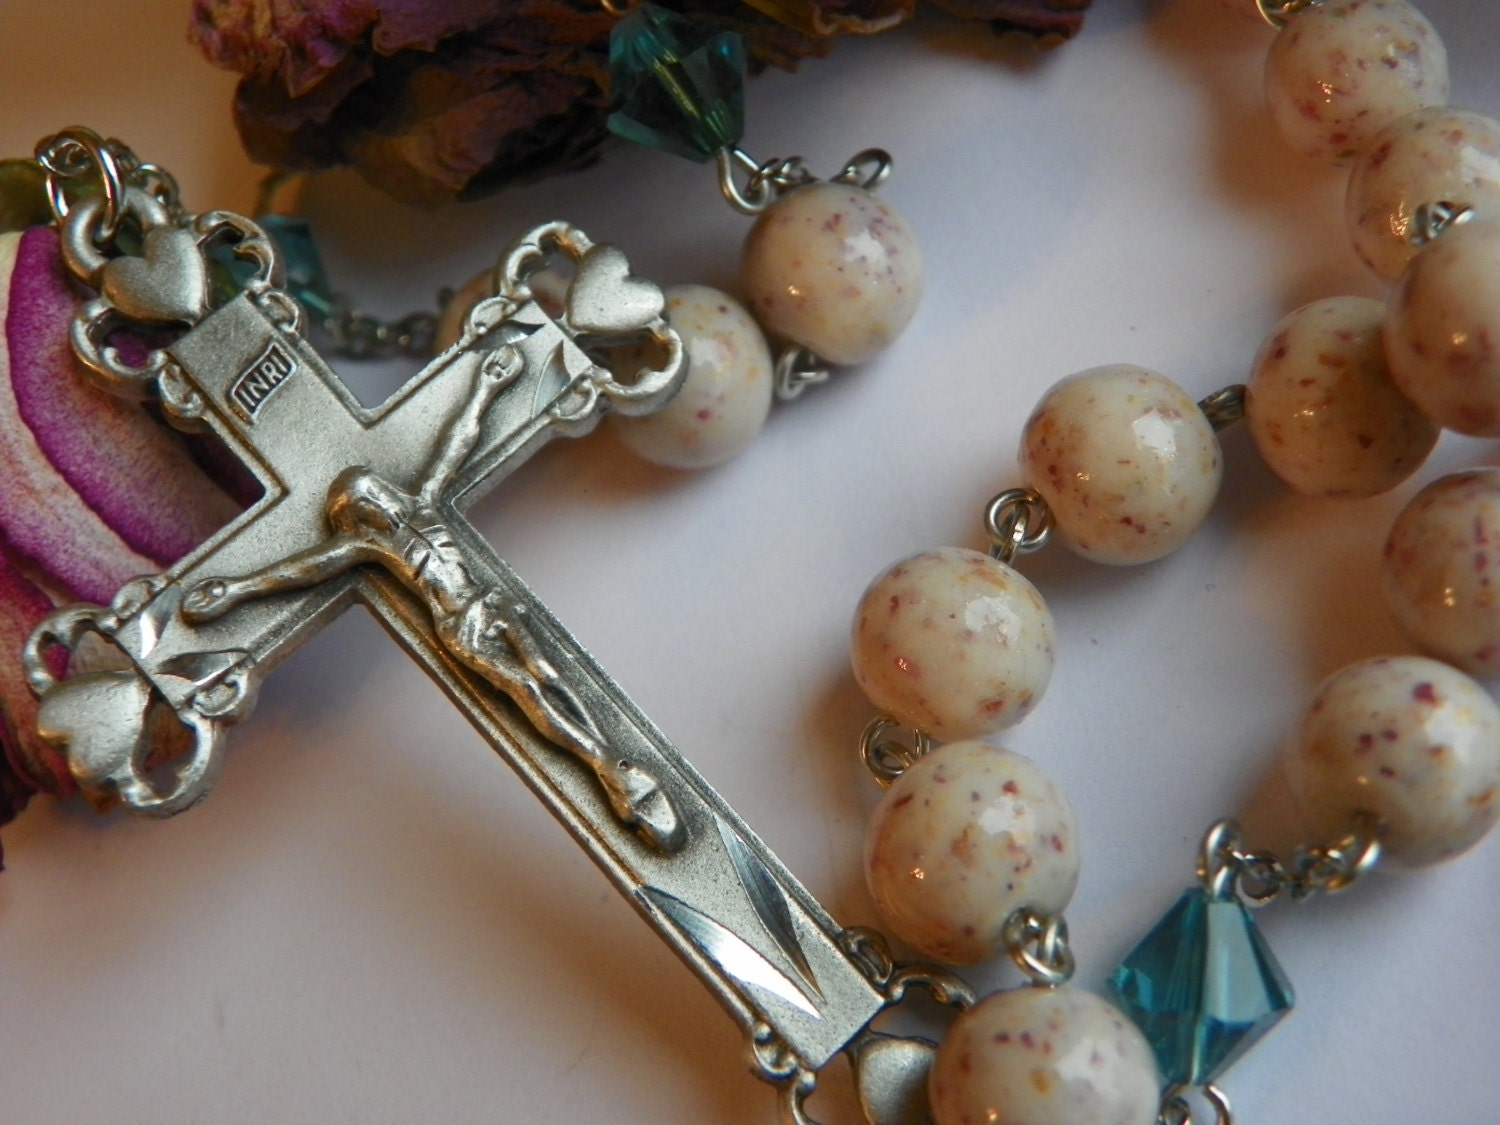 Rosary beads made from funeral flowers image collections flower rosary made from funeral flowers images flower wallpaper hd rosary made from funeral flowers gallery flower izmirmasajfo